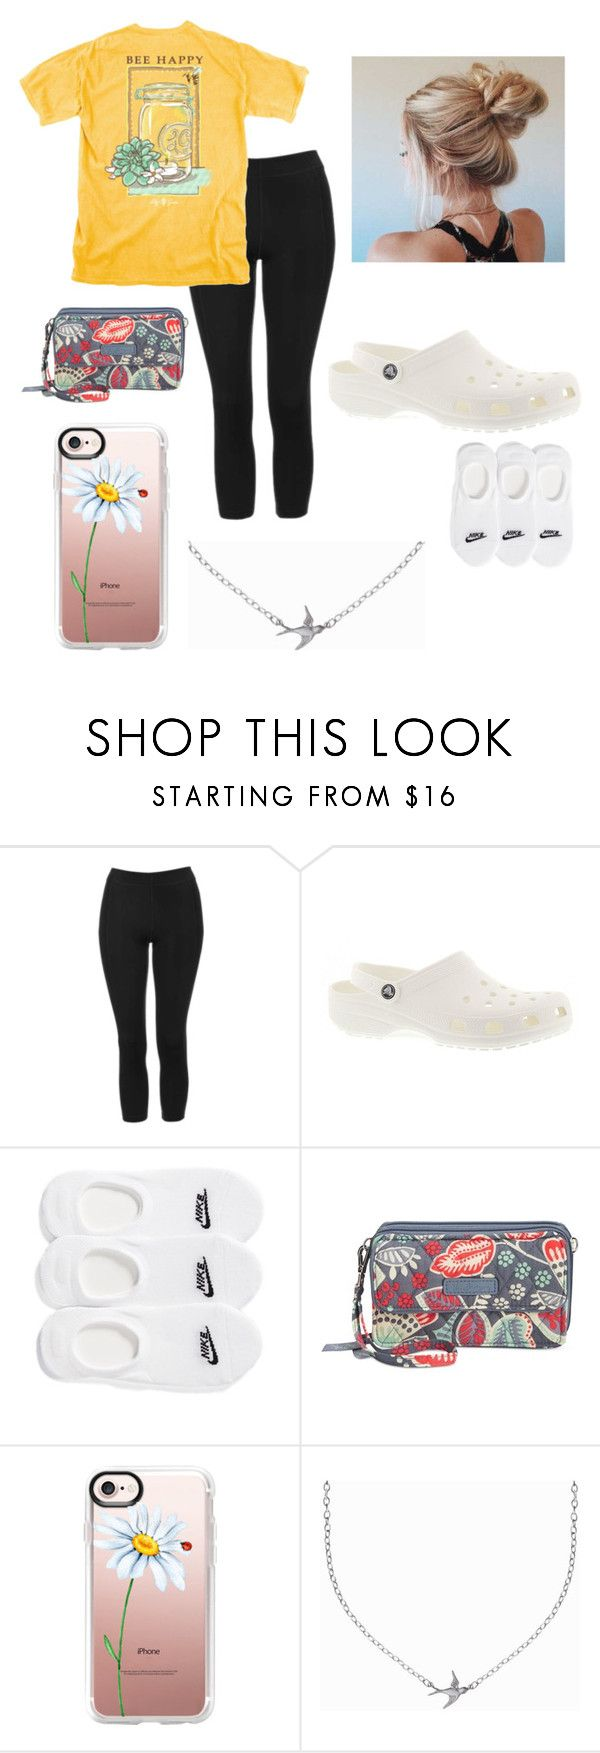 """""""I love and want that shirt"""" by geneviev-rauch ❤ liked on Polyvore featuring Topshop, Crocs, NIKE, Vera Bradley, Casetify and Minnie Grace"""